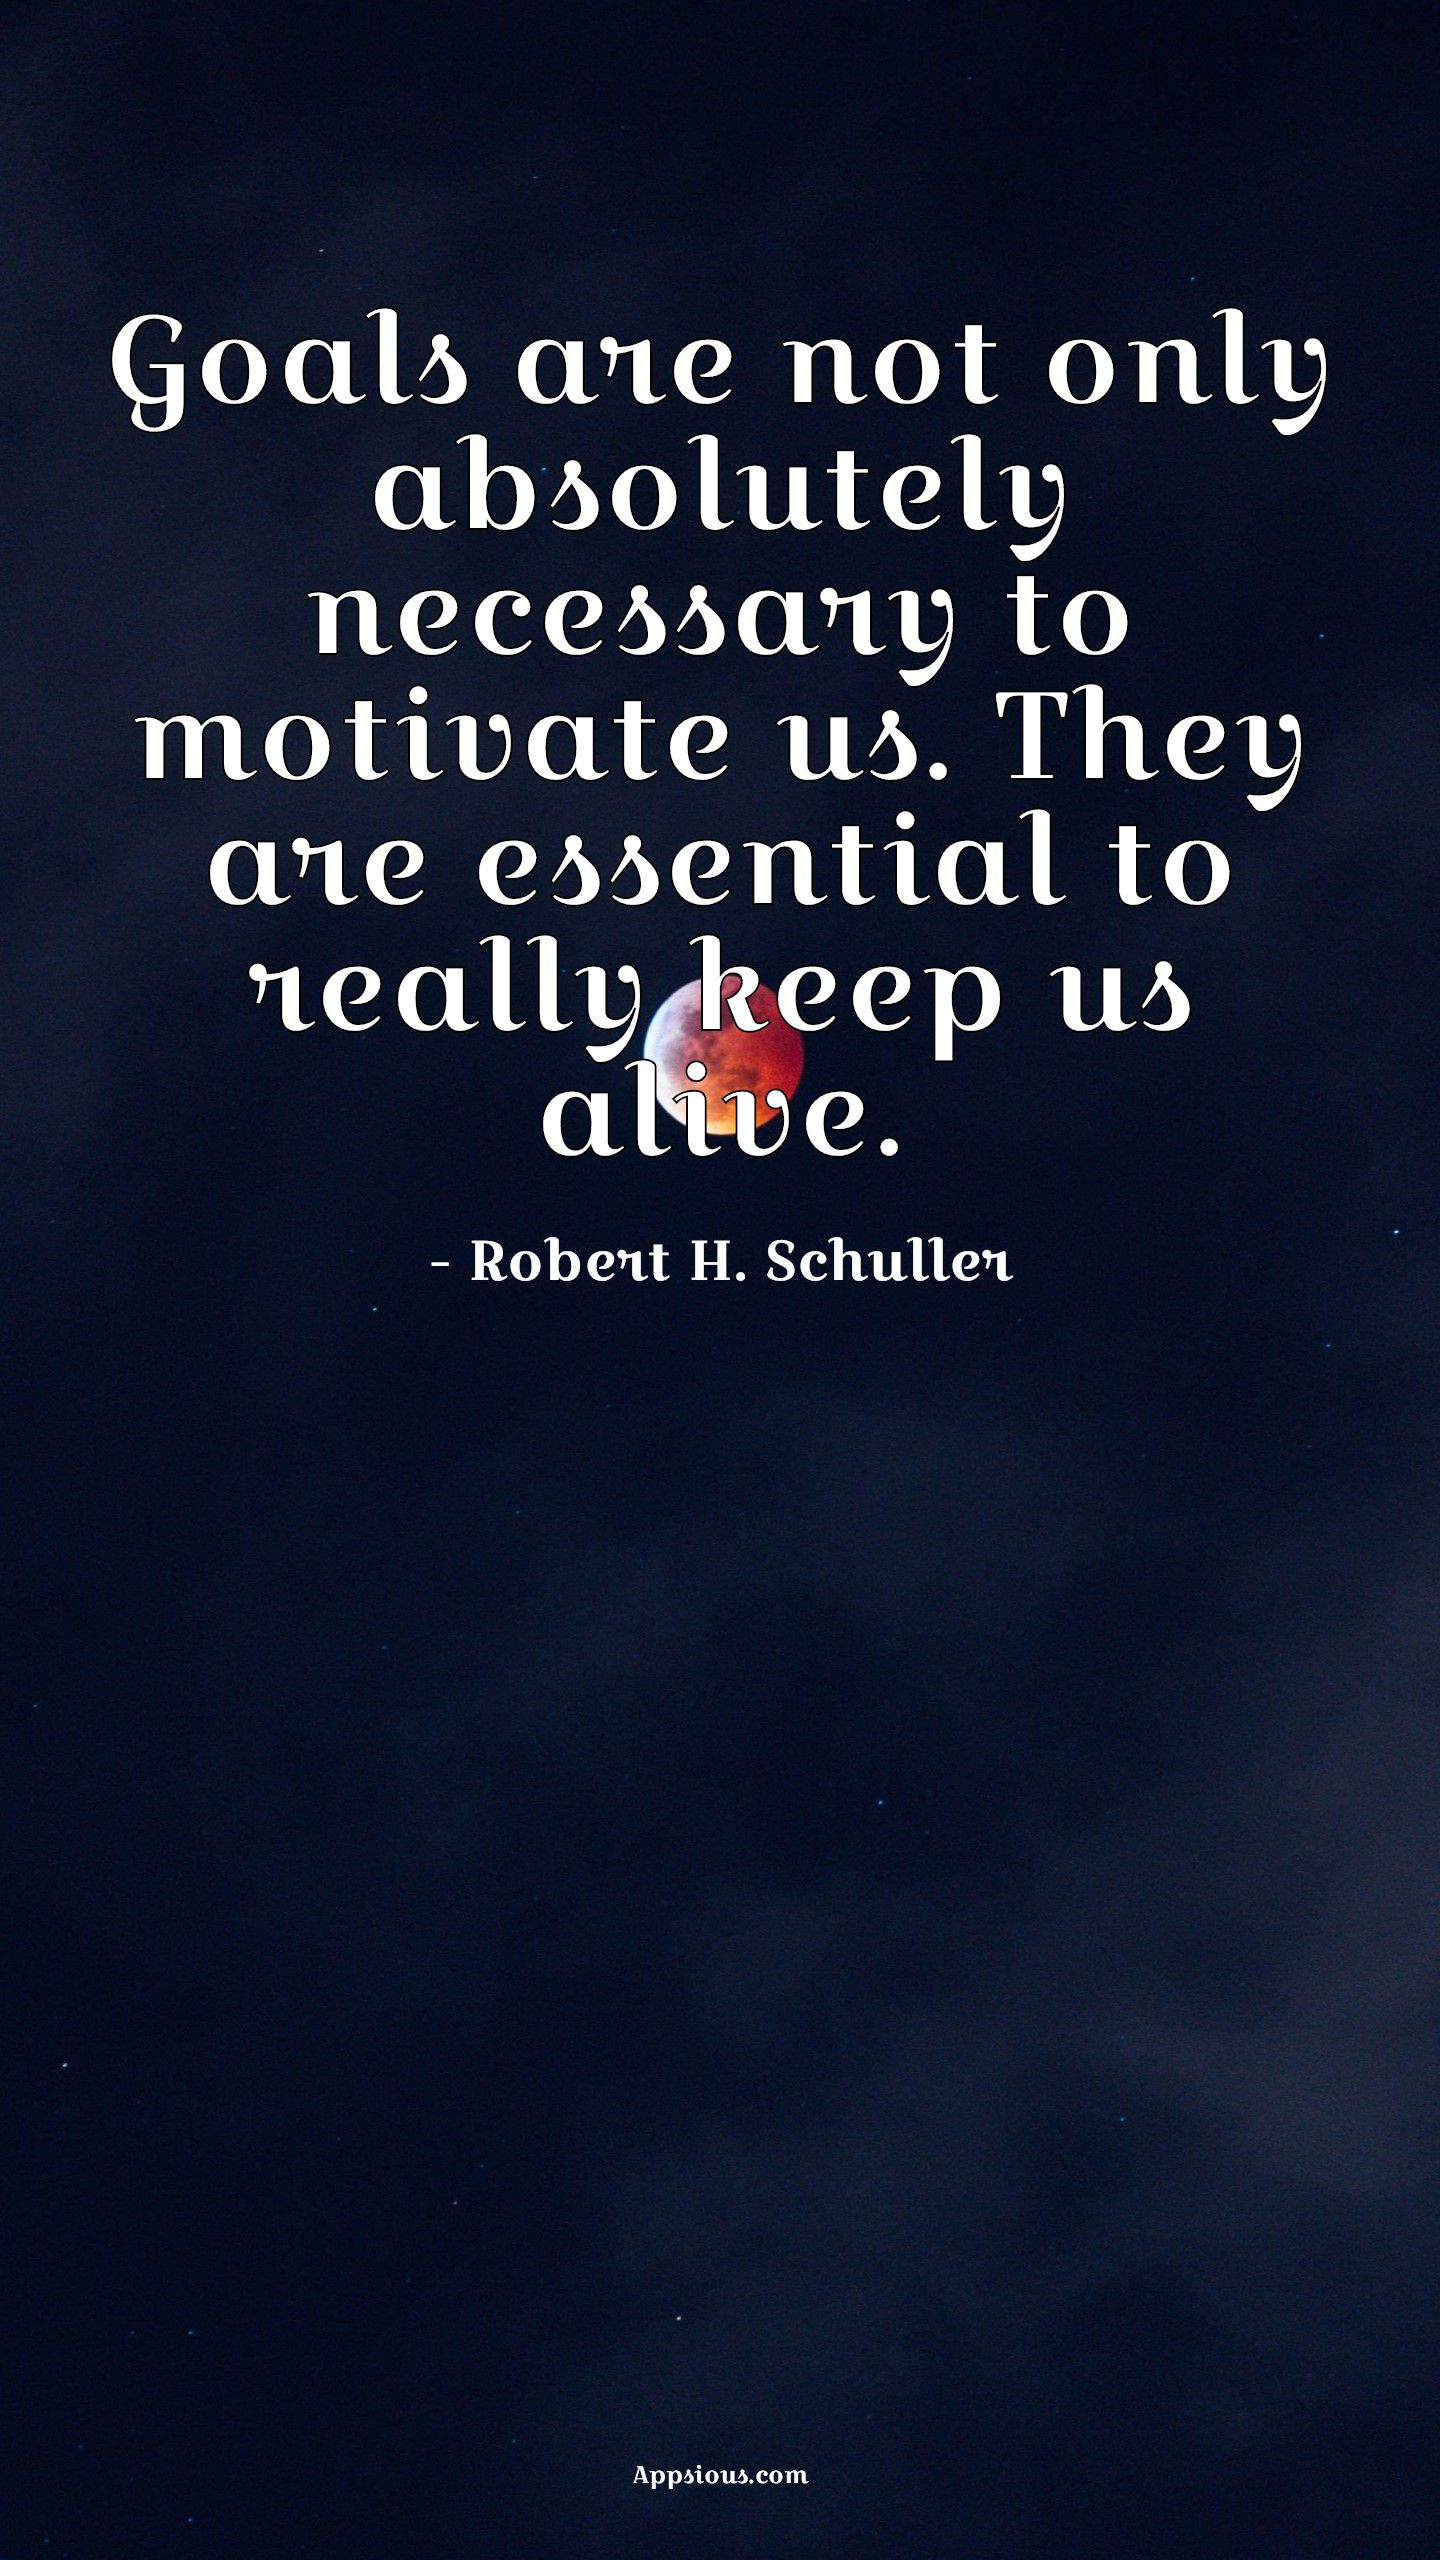 Goals are not only absolutely necessary to motivate us. They are essential to really keep us alive.